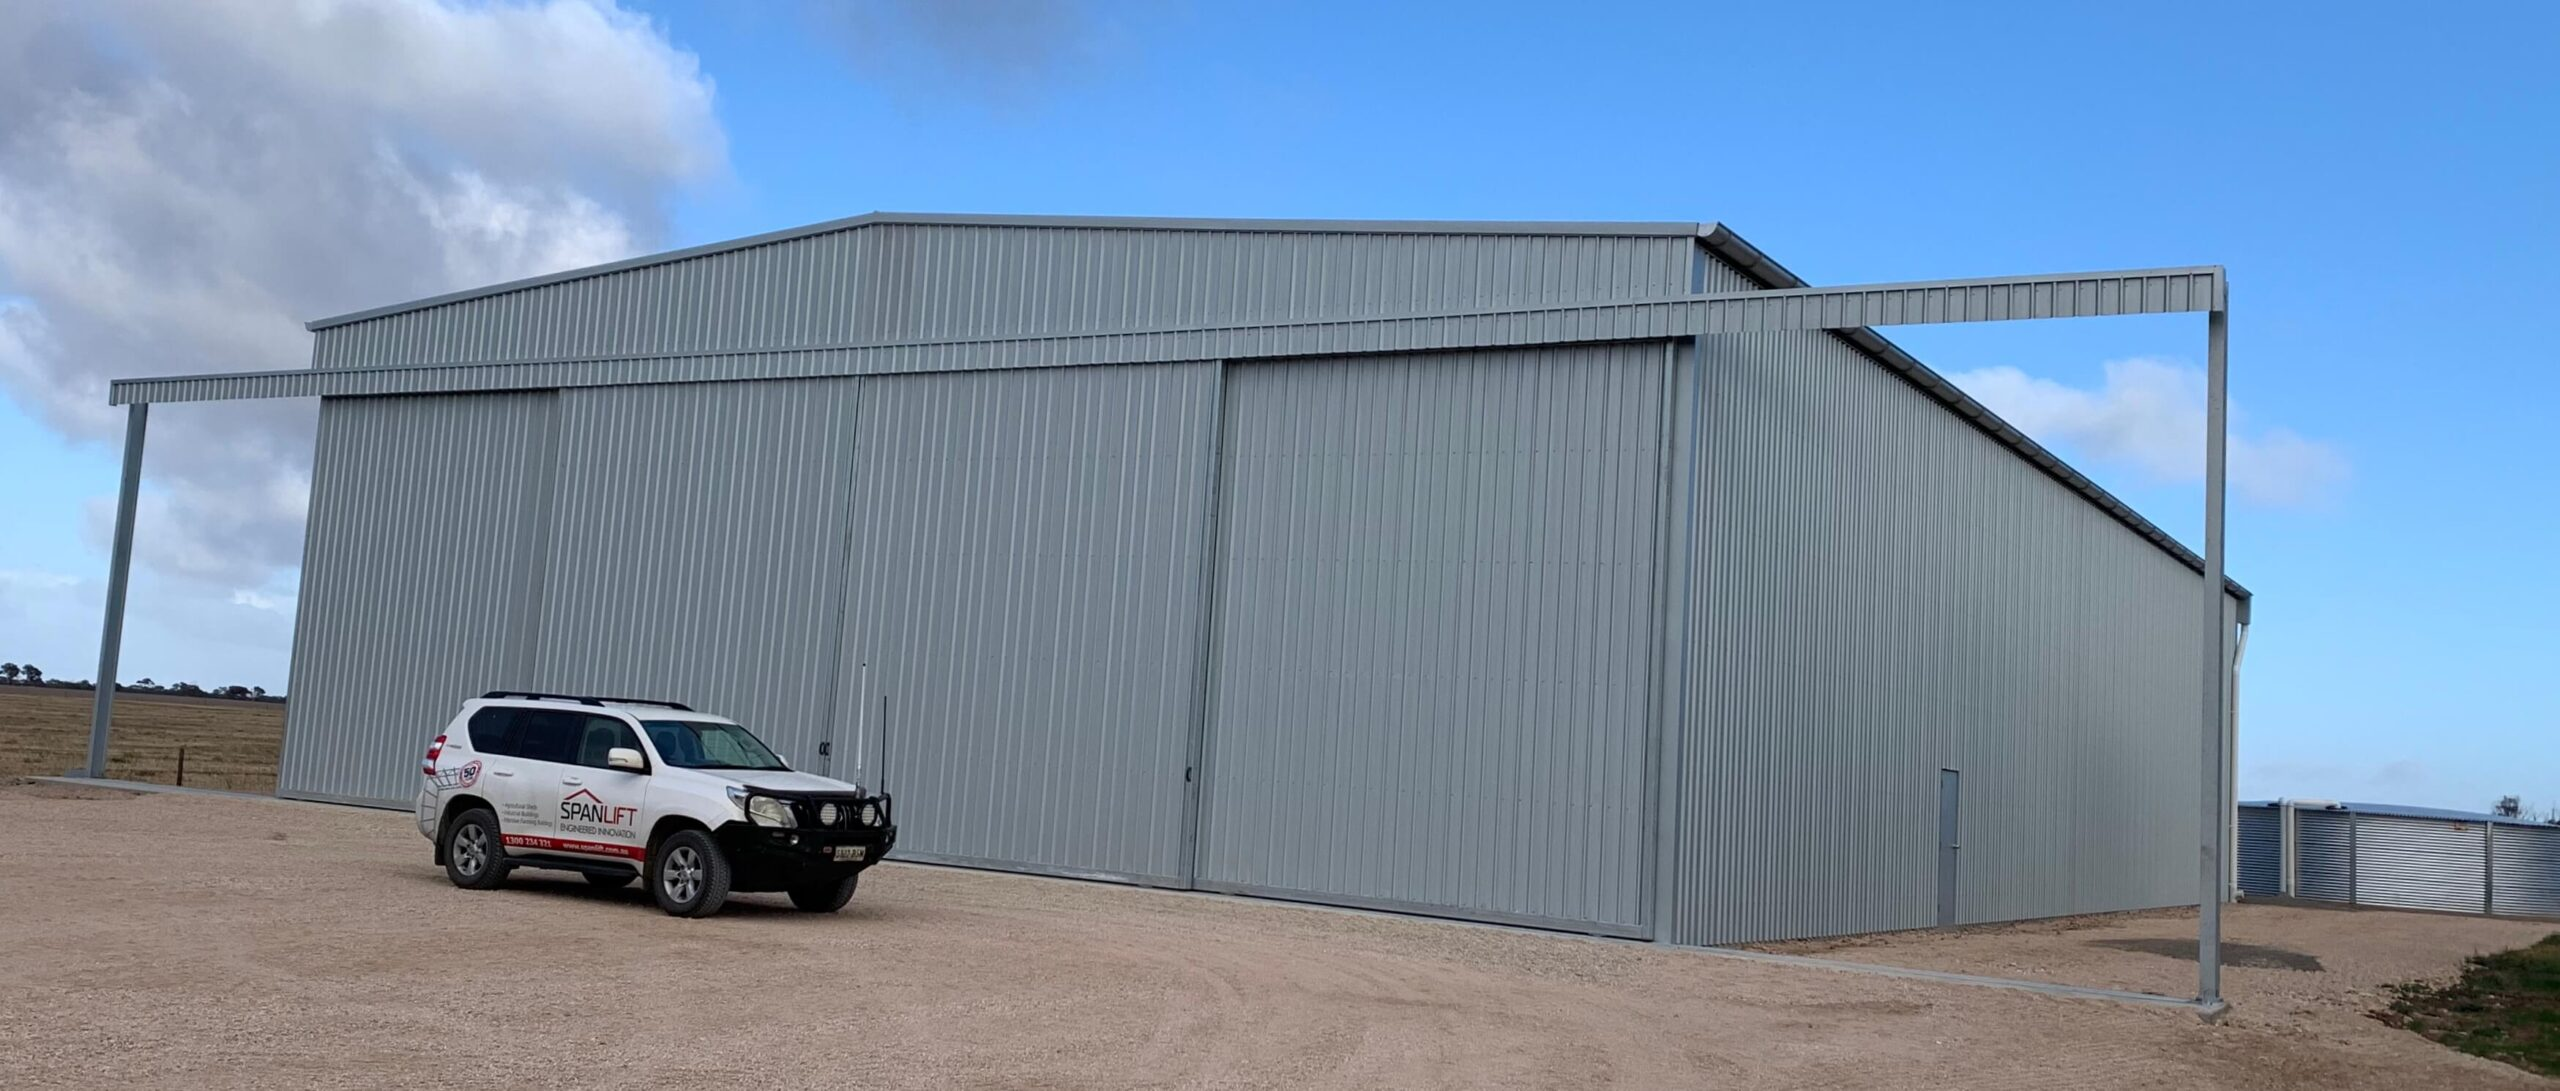 IMG E2411 scaled - Steel Agricultural Sheds